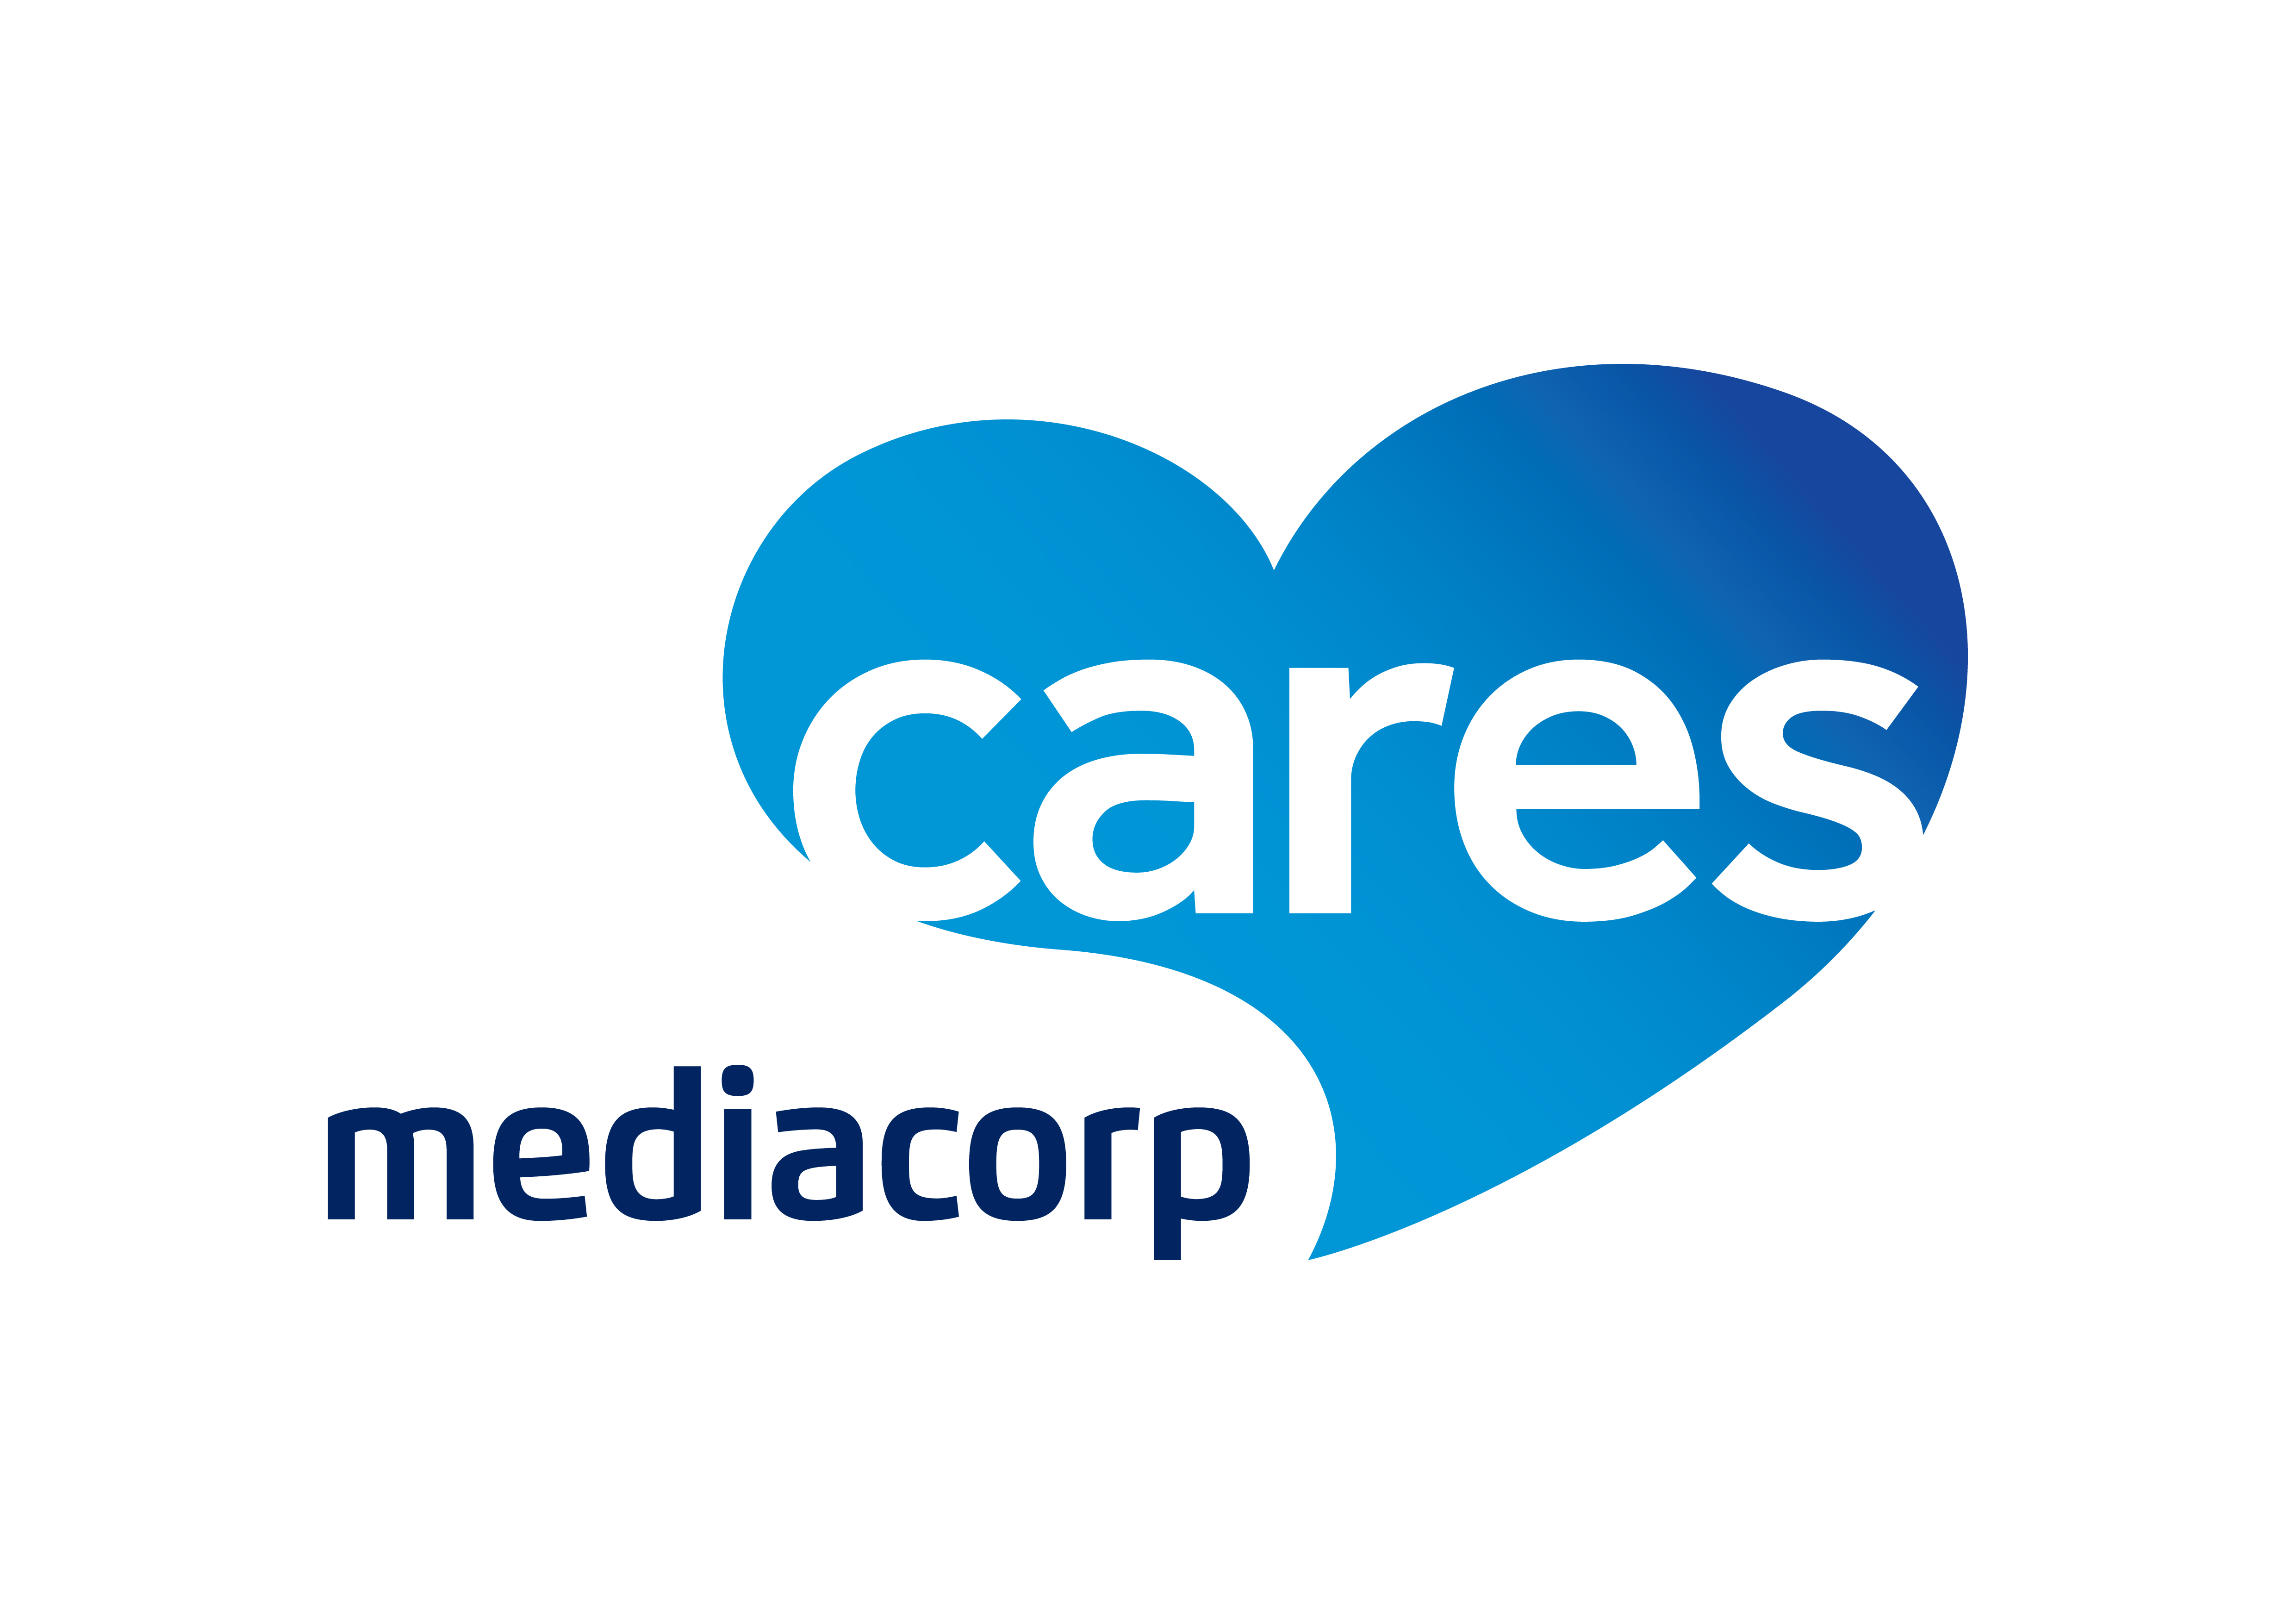 MCares